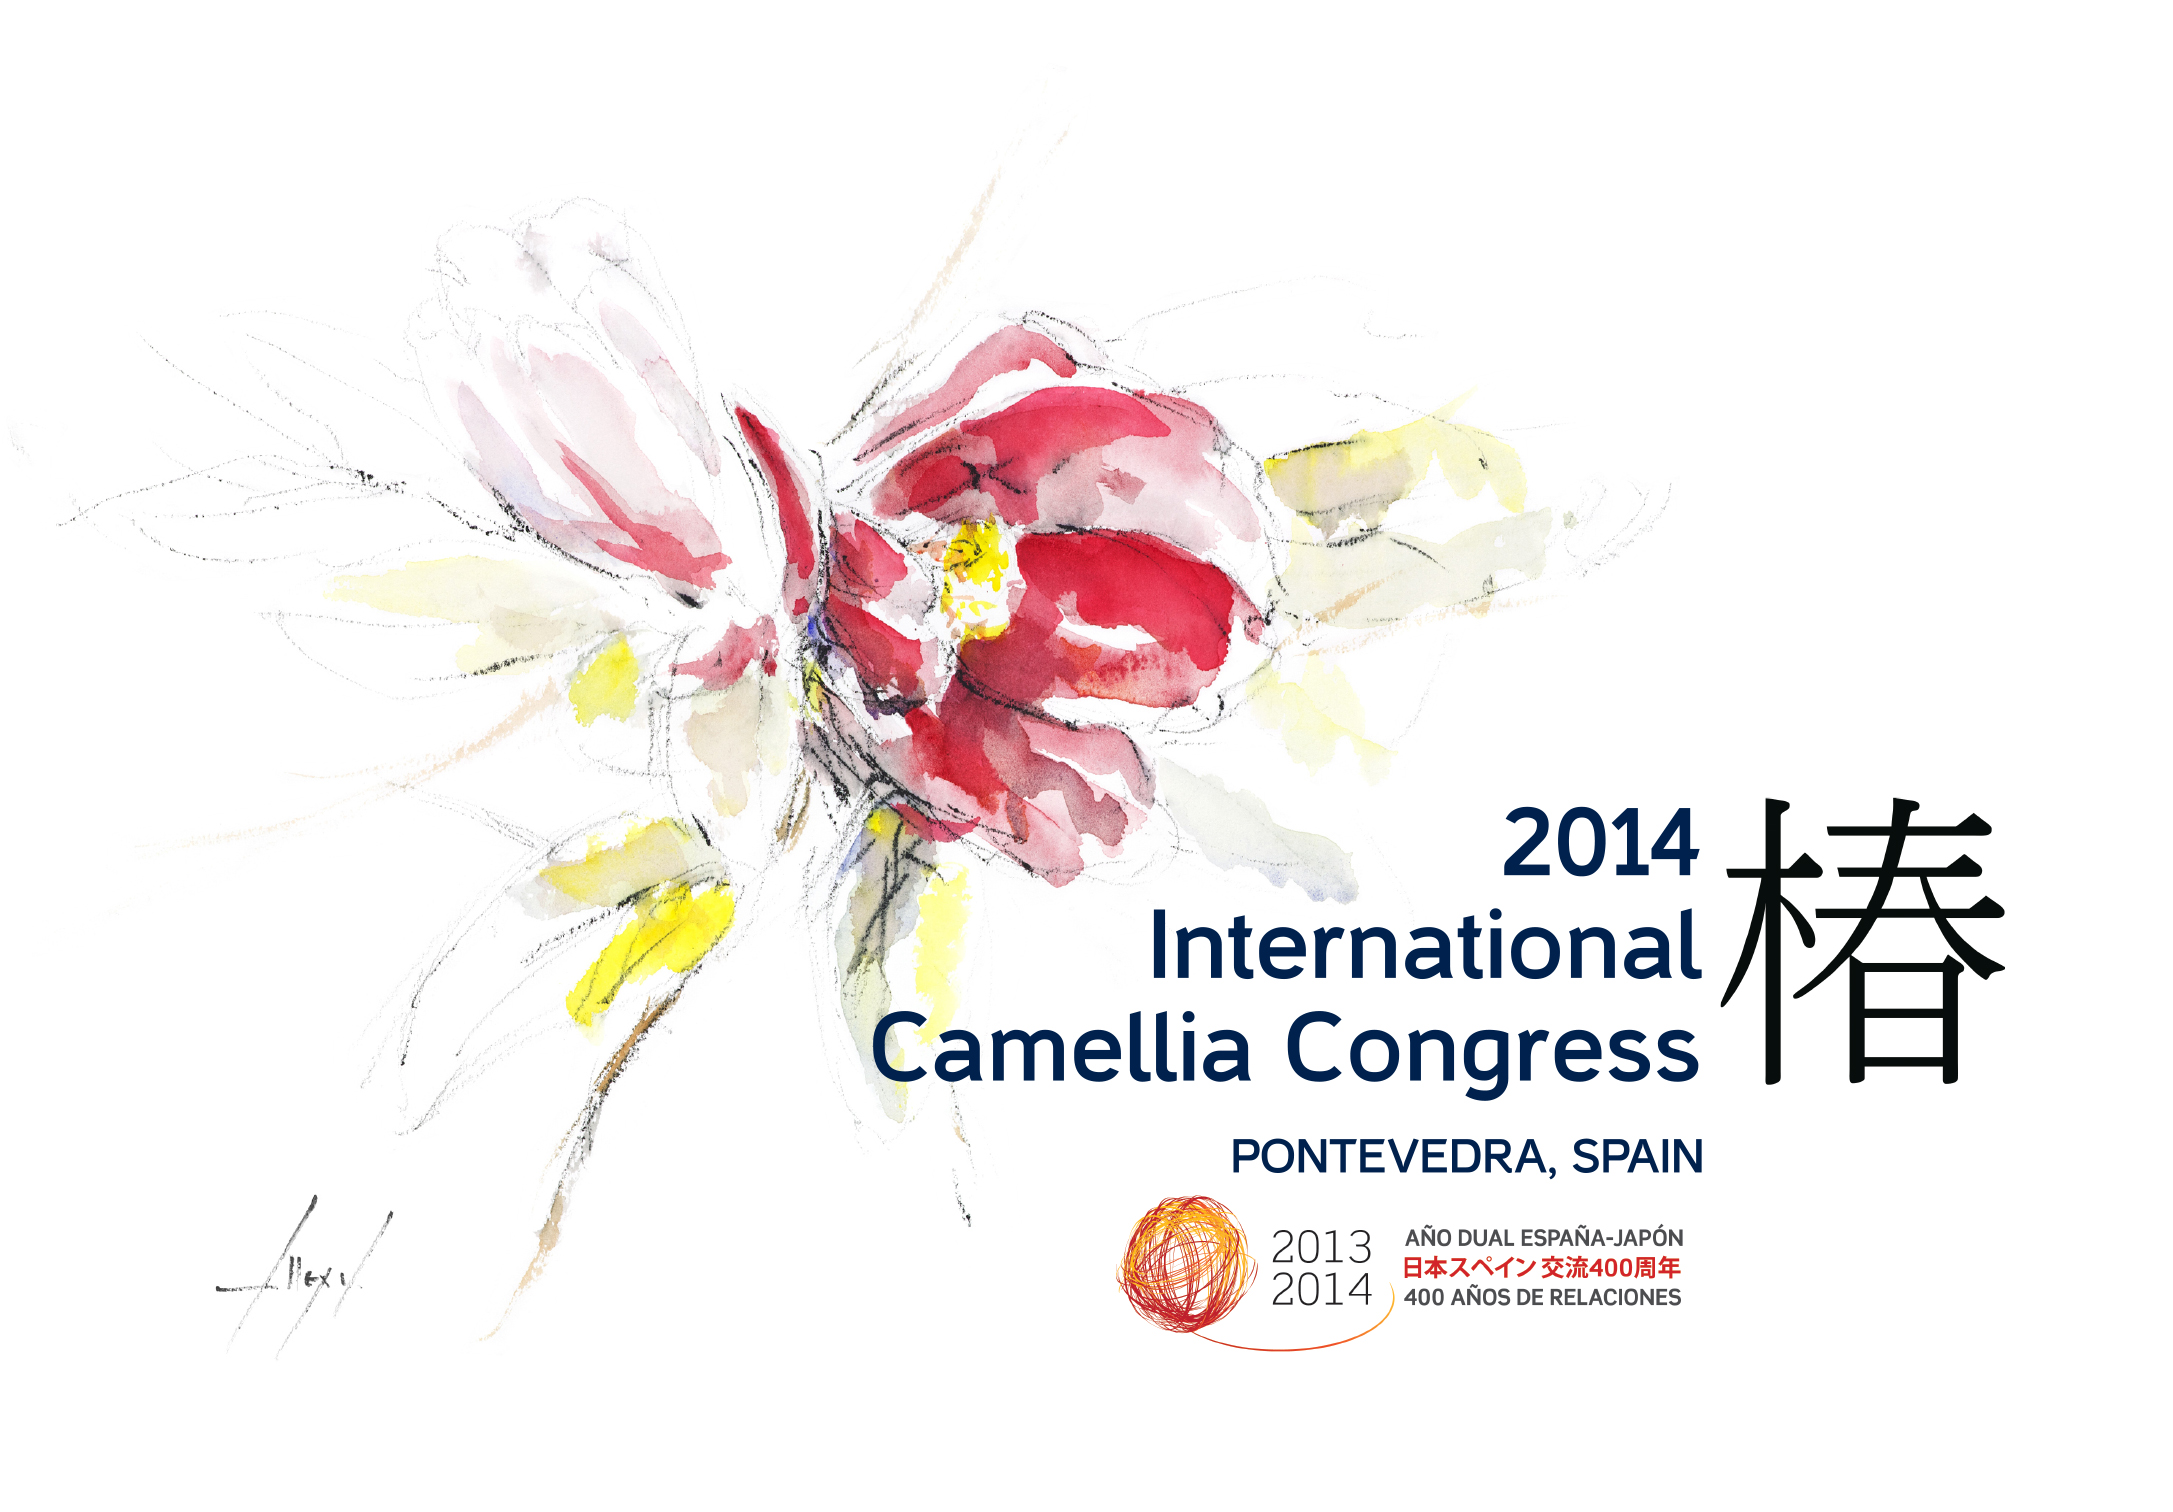 2014 International Camellia Congress